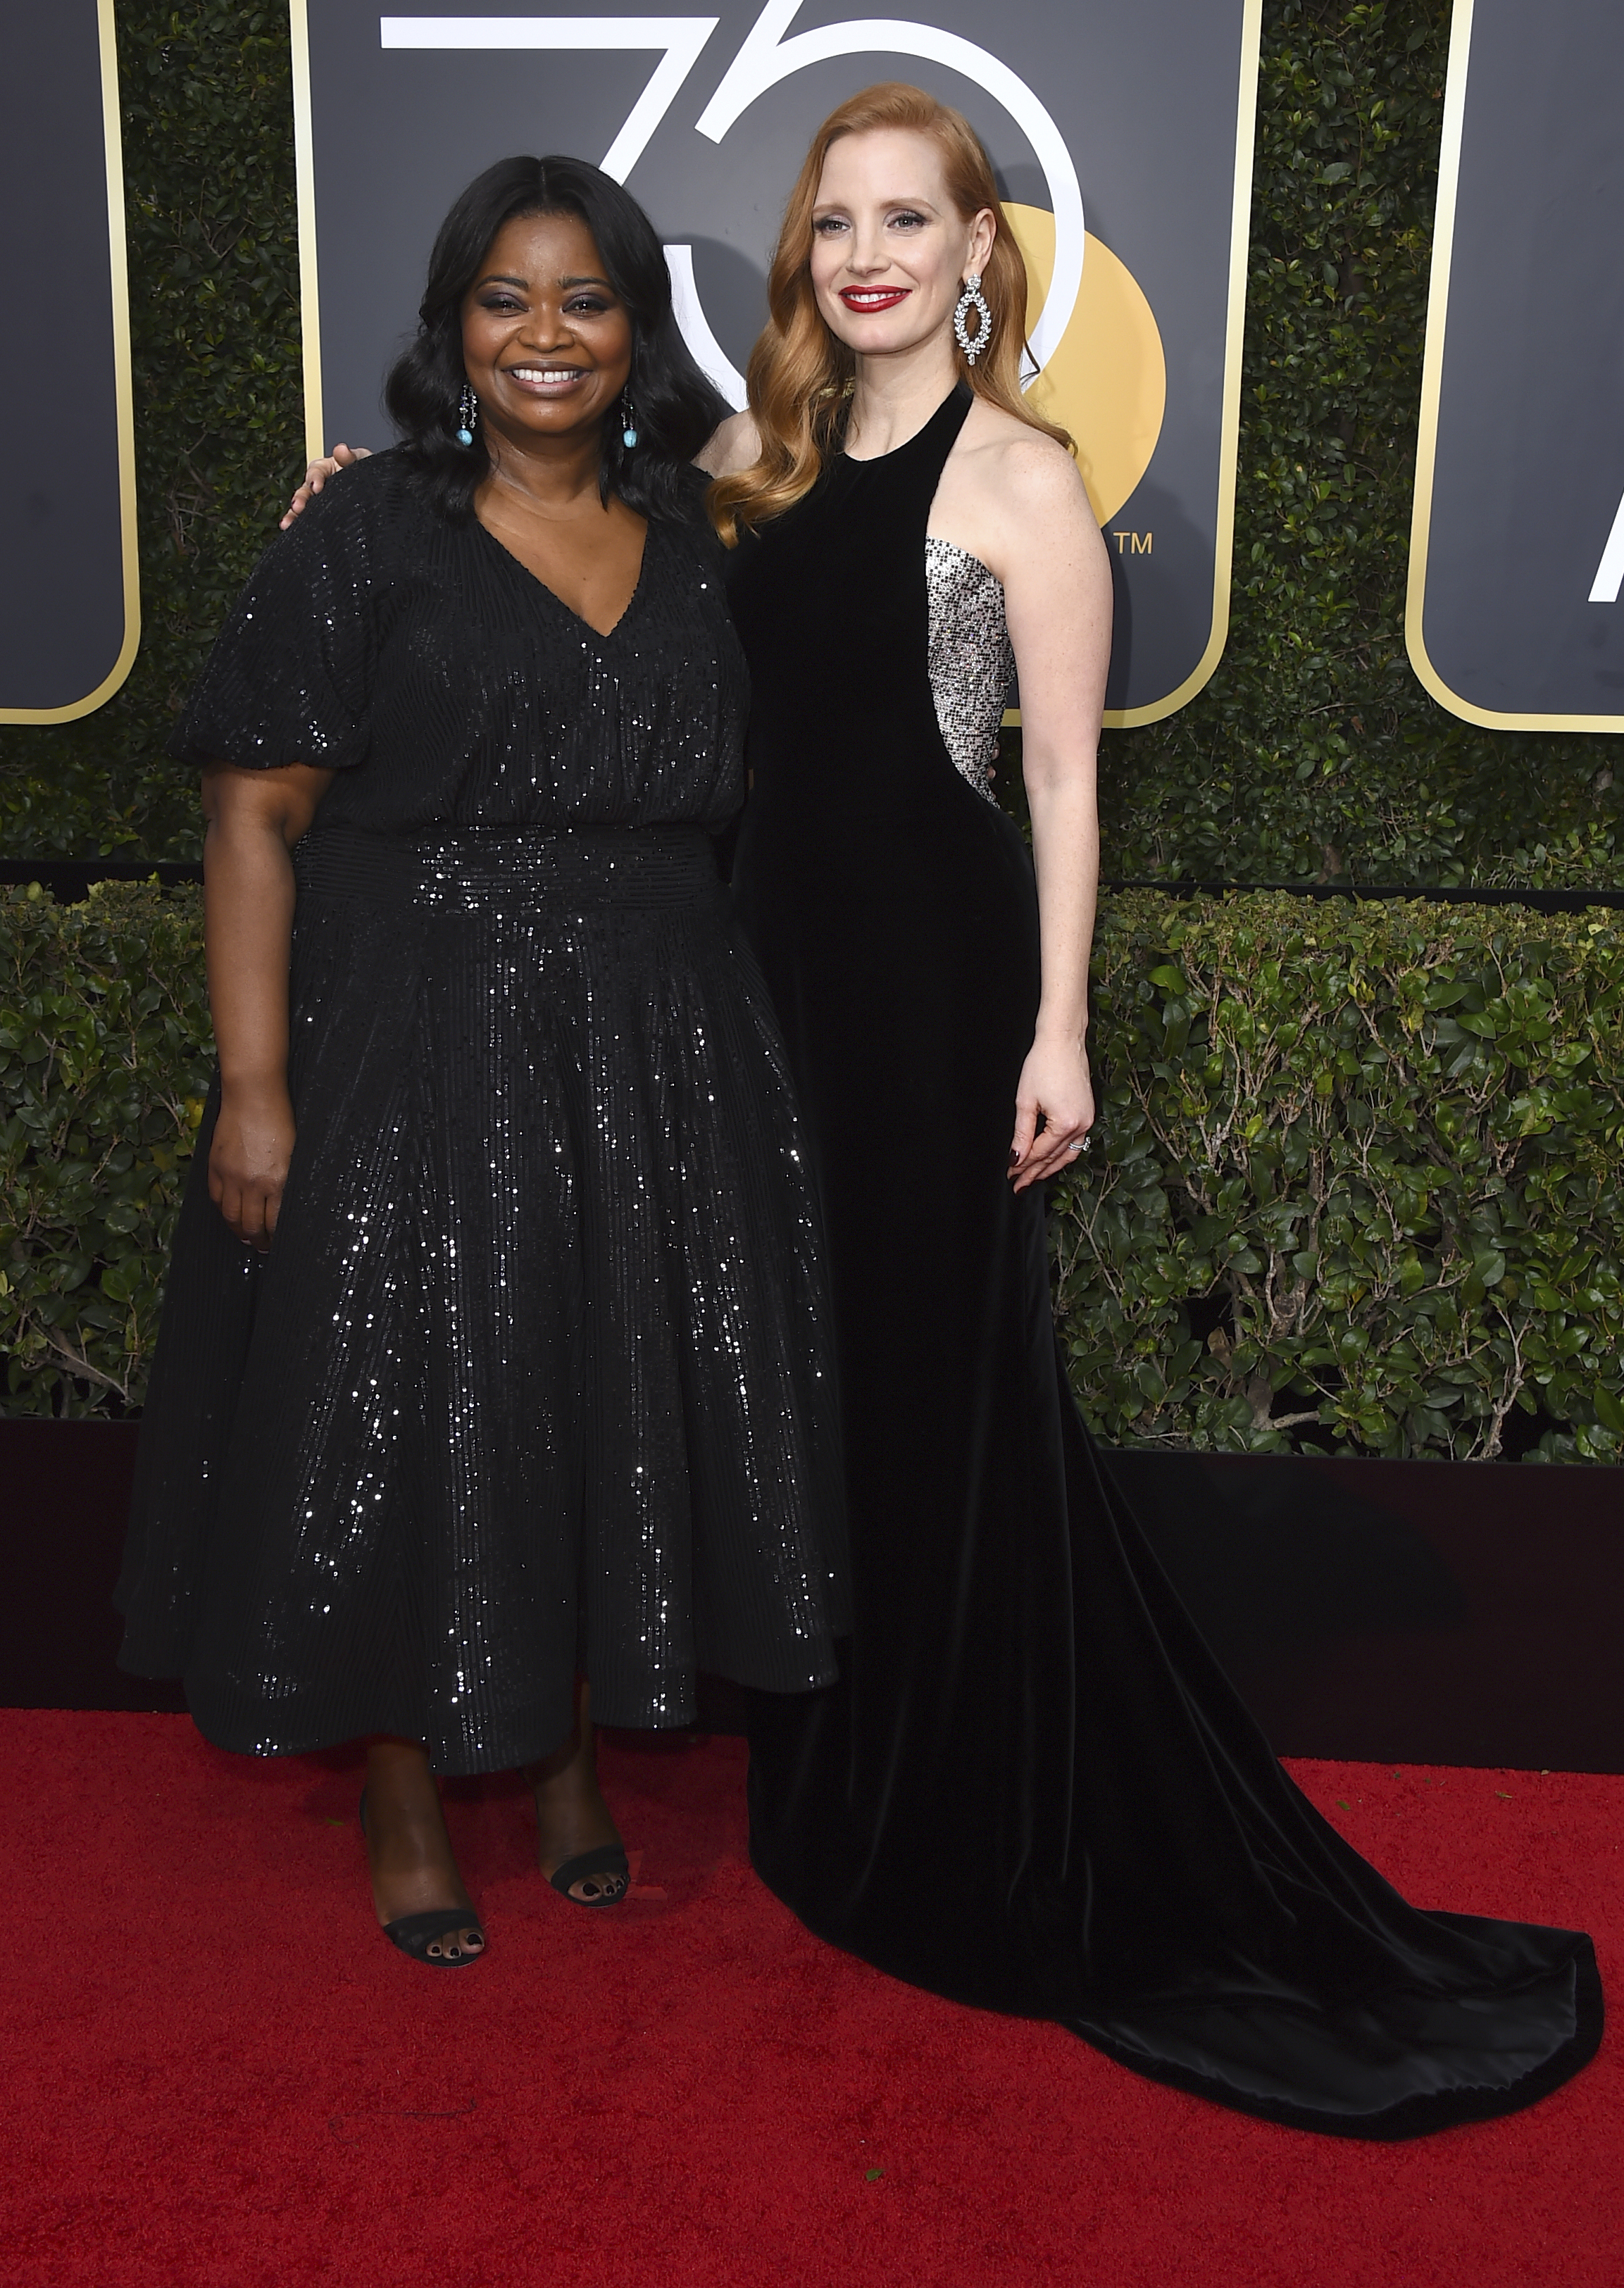 <div class='meta'><div class='origin-logo' data-origin='AP'></div><span class='caption-text' data-credit='Jordan Strauss/Invision/AP'>Octavia Spencer, left, and Jessica Chastain arrive at the 75th annual Golden Globe Awards at the Beverly Hilton Hotel on Sunday, Jan. 7, 2018, in Beverly Hills, Calif.</span></div>